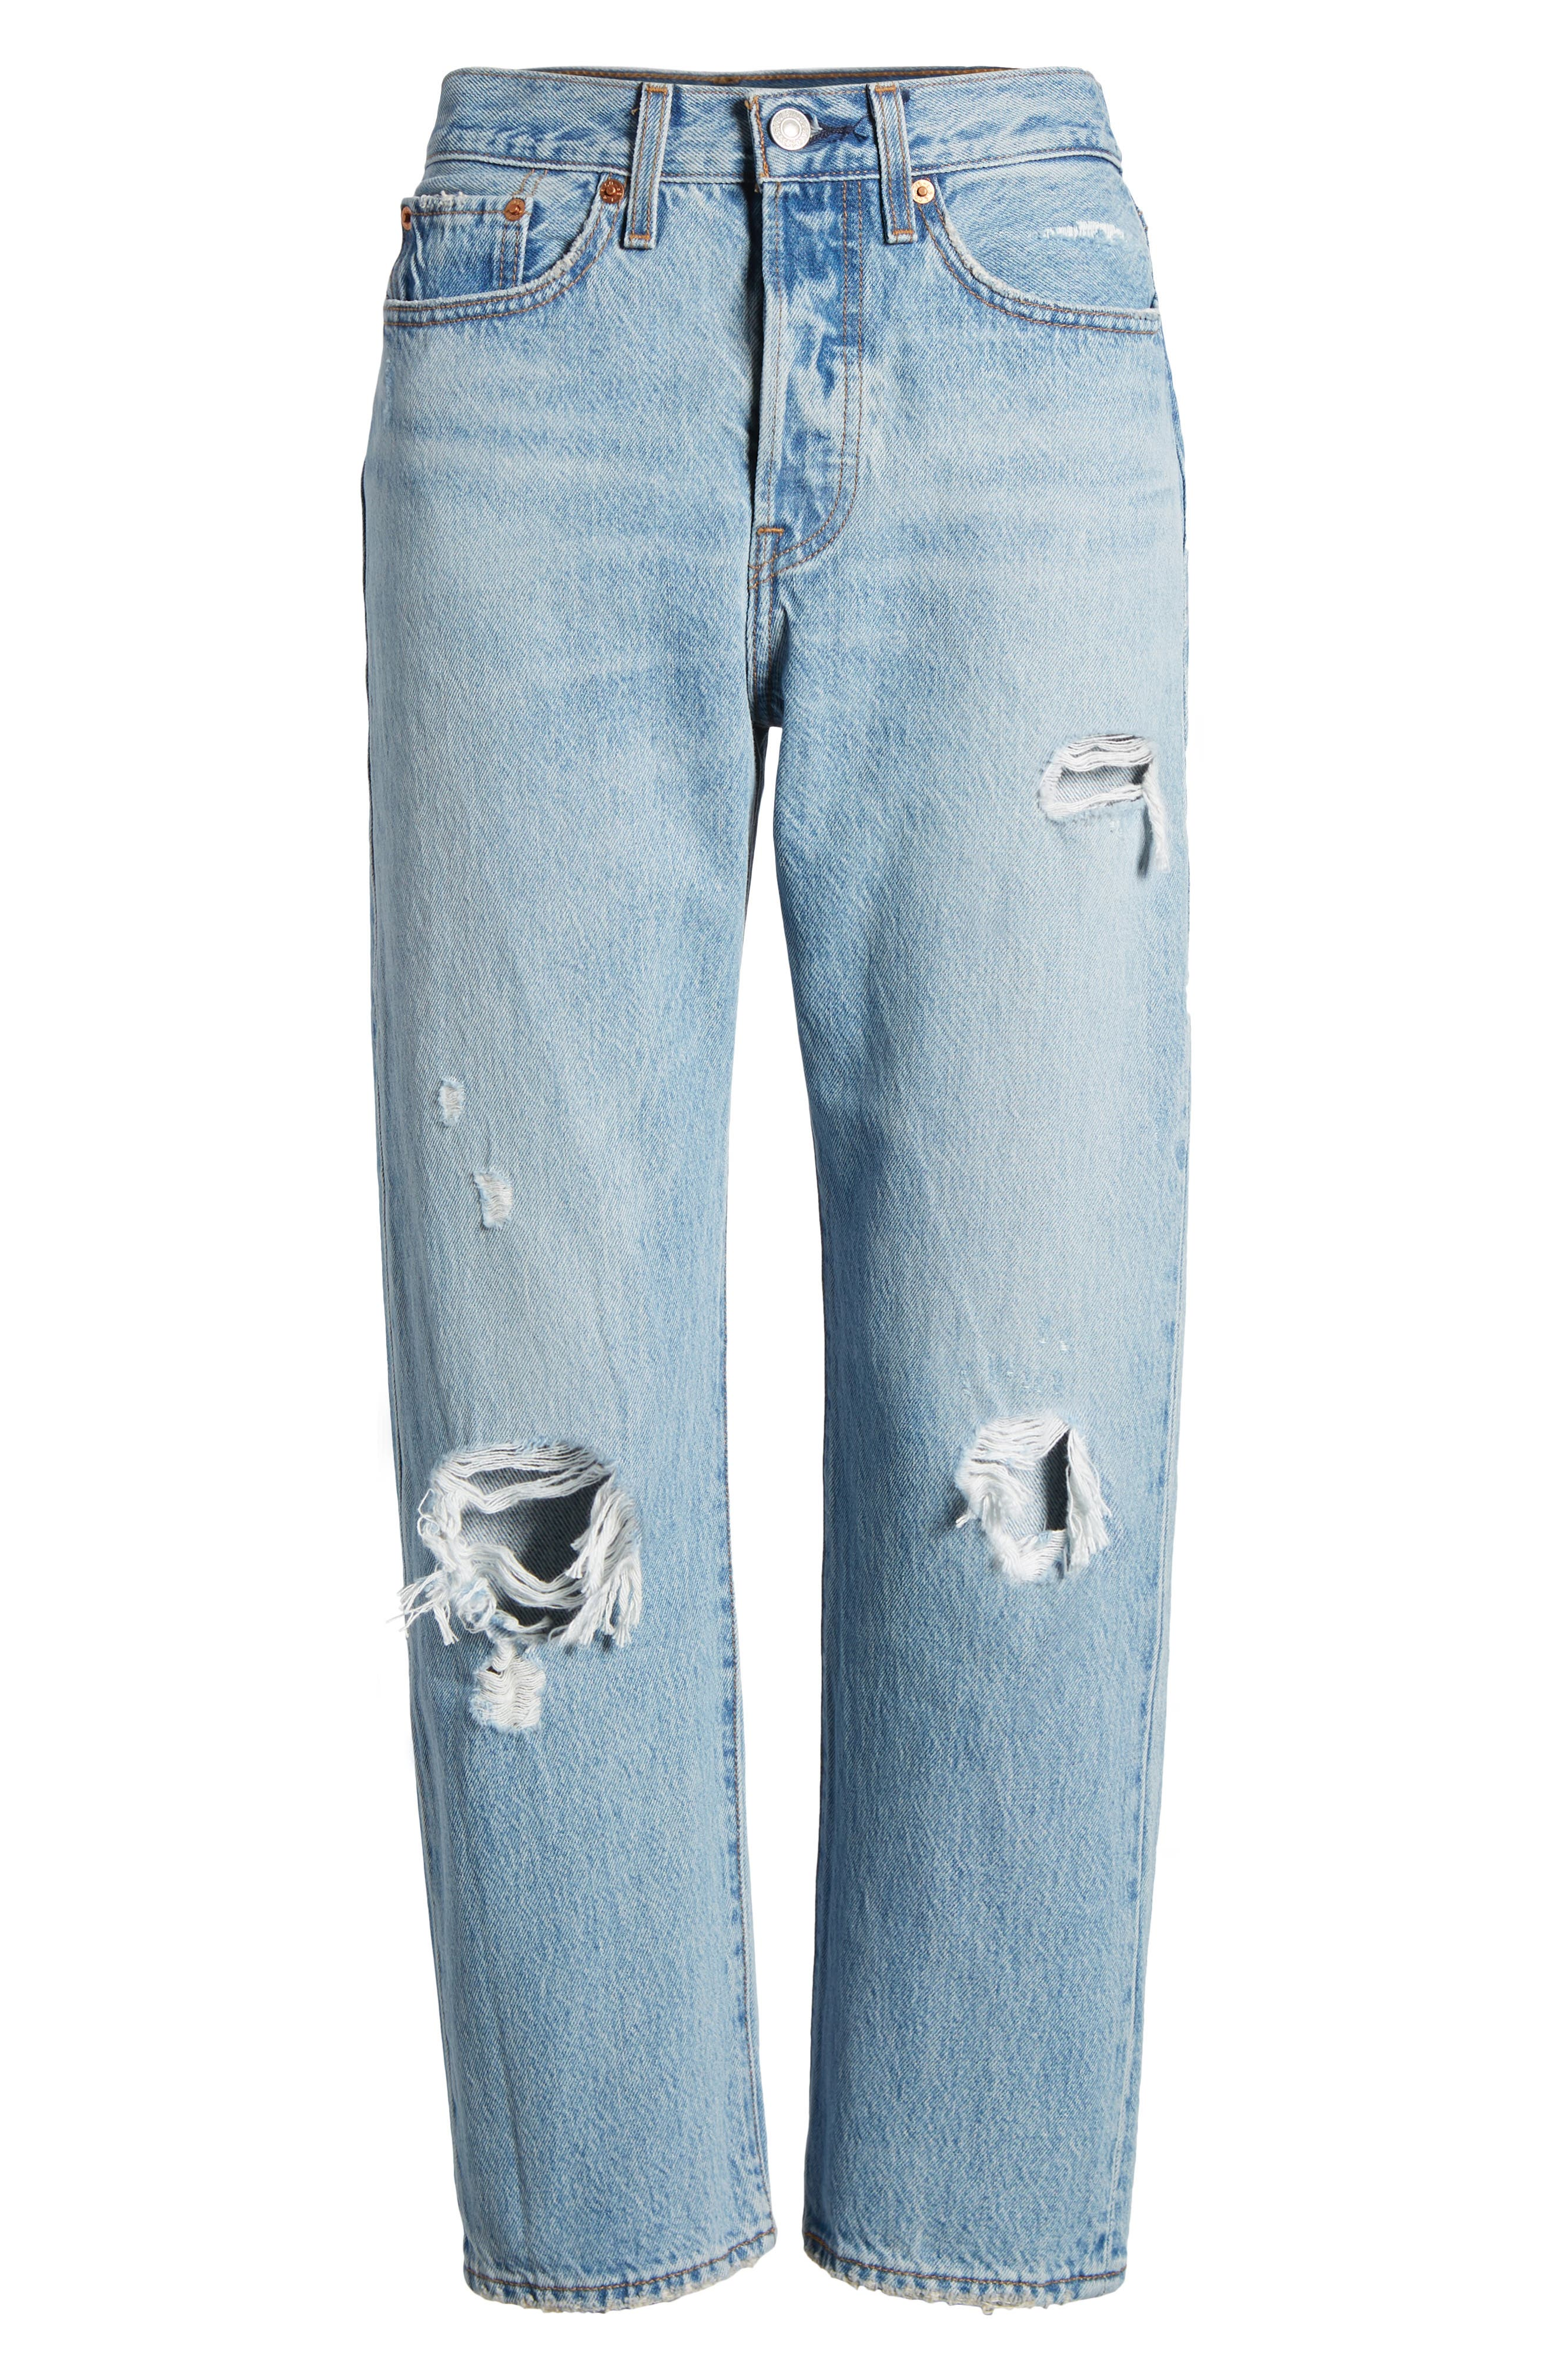 Wedgie Ripped Straight Leg Jeans,                             Alternate thumbnail 6, color,                             Authentically Yours